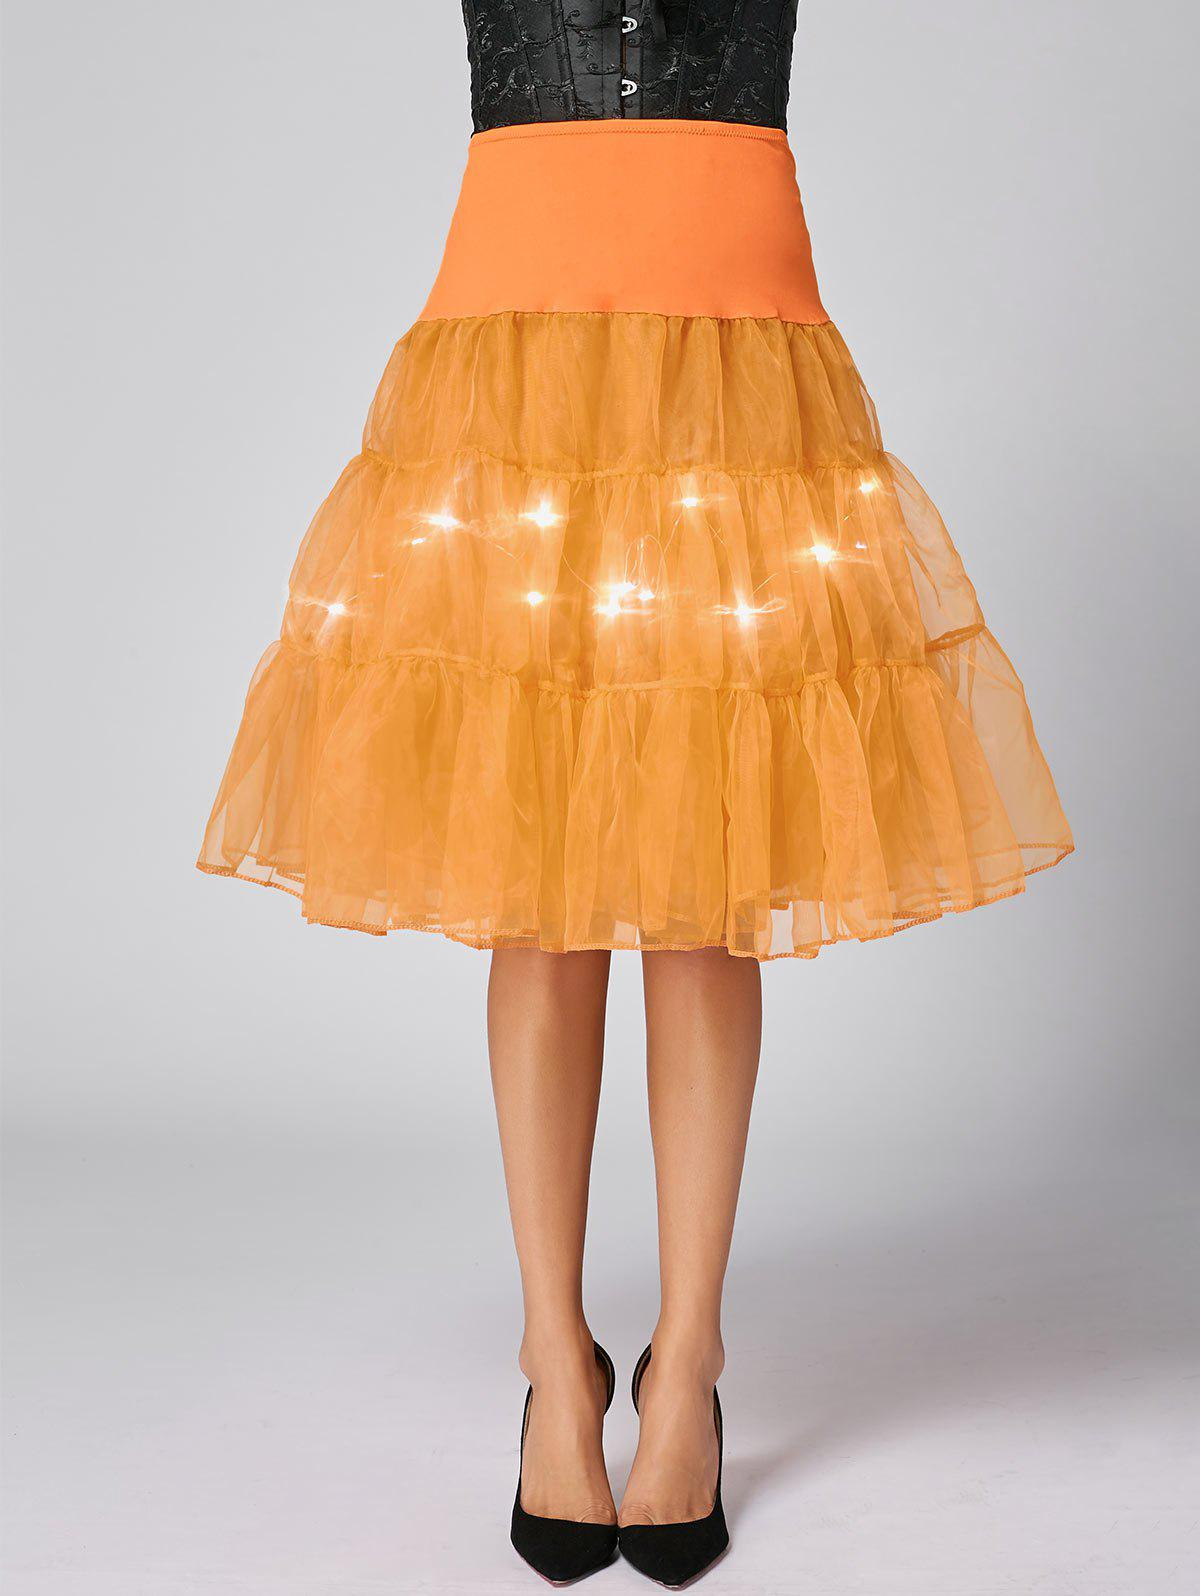 Flounce Light Up jupe de cosplay - Orange L